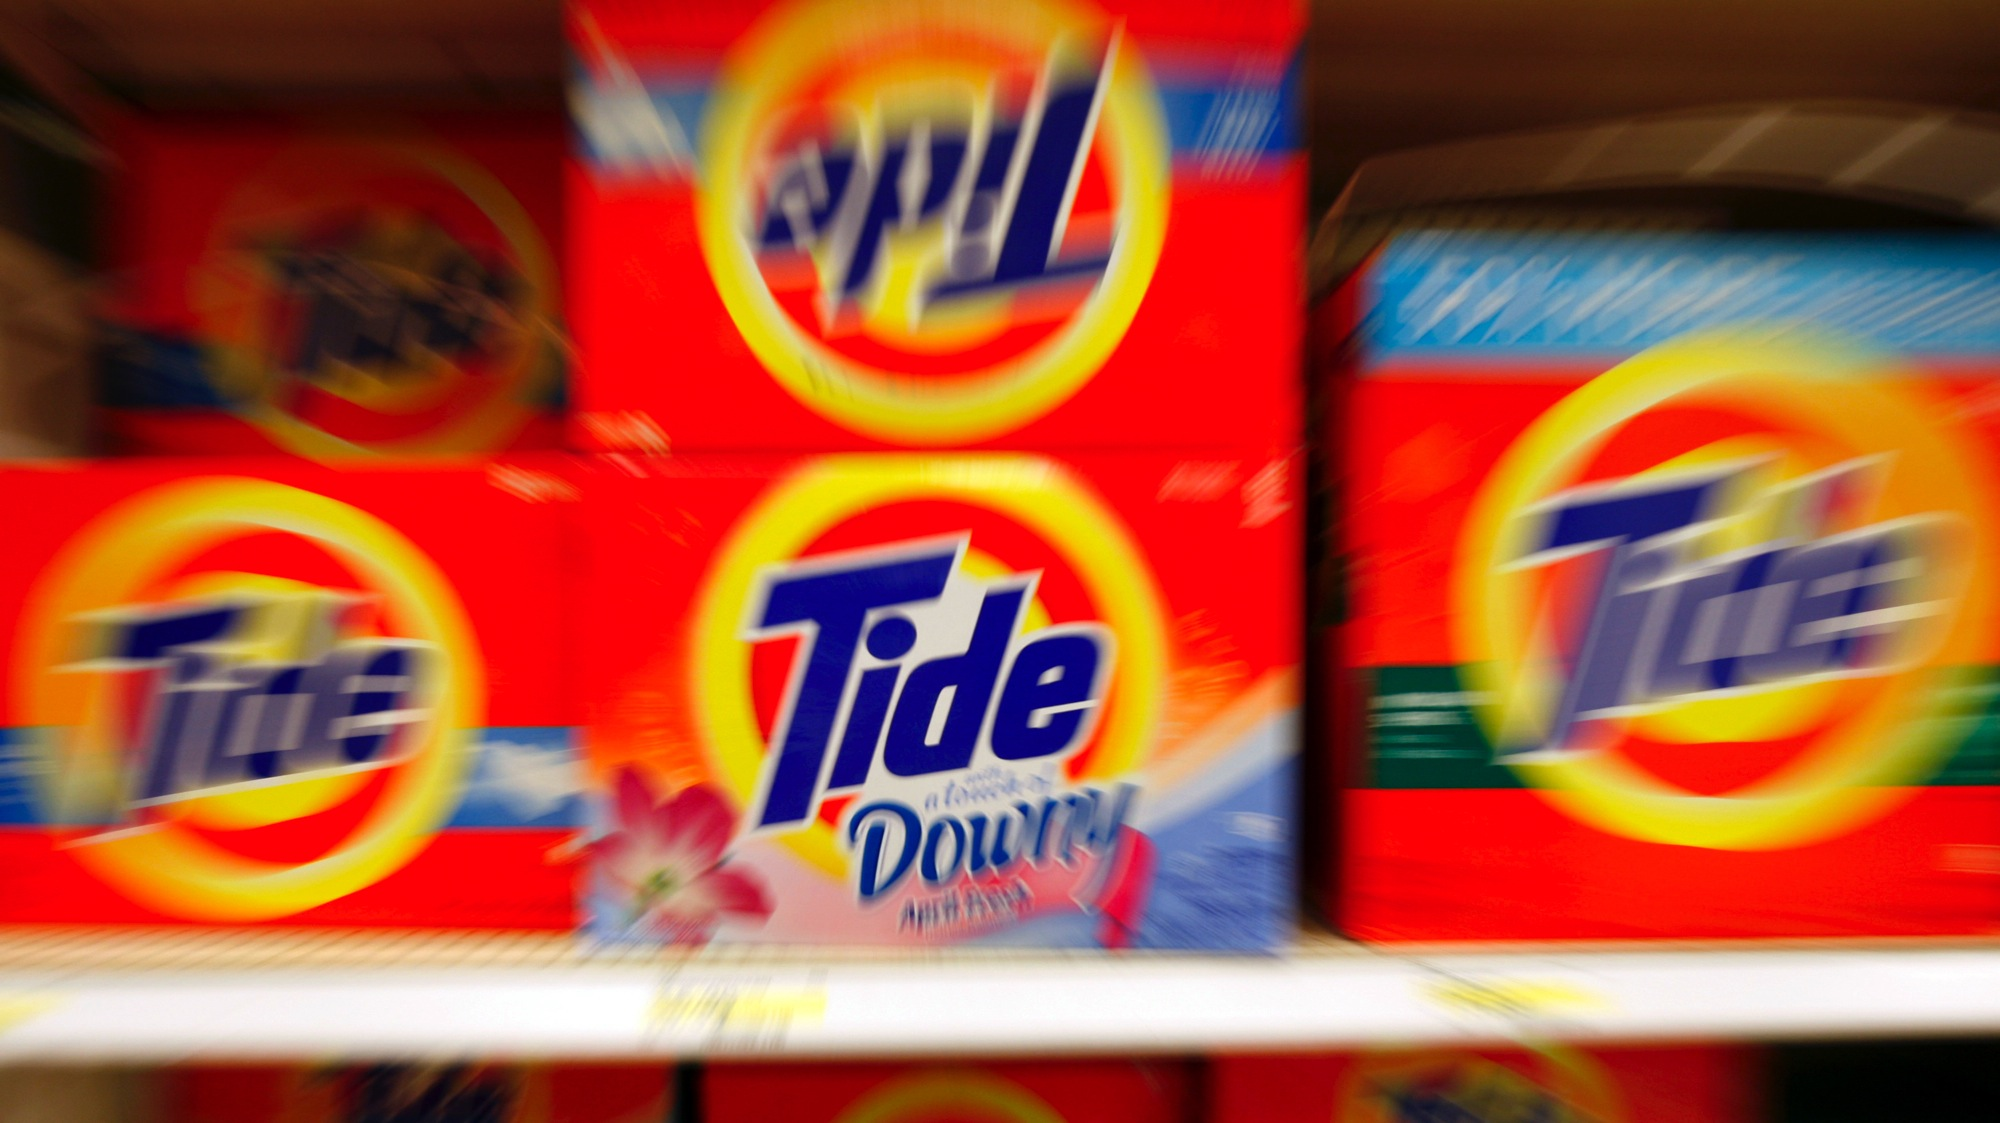 Boxes of Tide detergent, a Procter & Gamble product, sit on a shelf at a store in Alexandria, May 28, 2009. Procter & Gamble forecast fiscal 2010 earnings way below Wall Street estimates, as it invests in international markets and new products, but its shares fell only slightly as analysts said the investments were needed for future growth. REUTERS/Molly Riley (UNITED STATES BUSINESS)